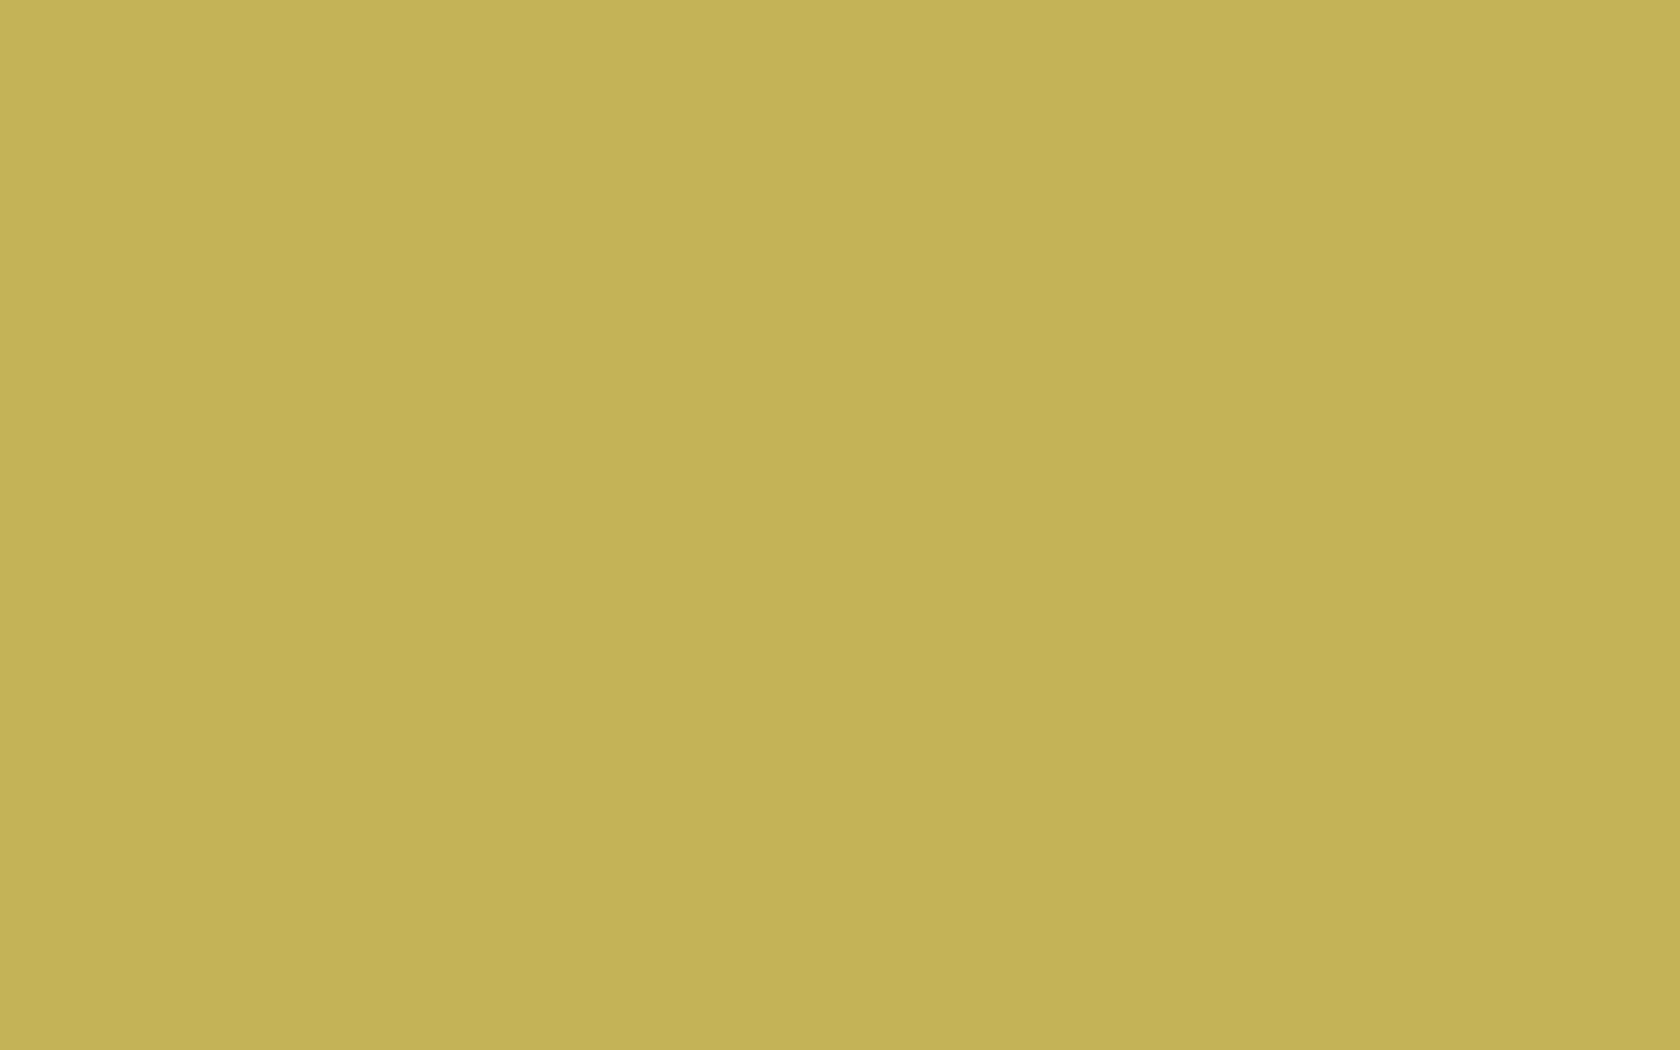 1680x1050 Vegas Gold Solid Color Background